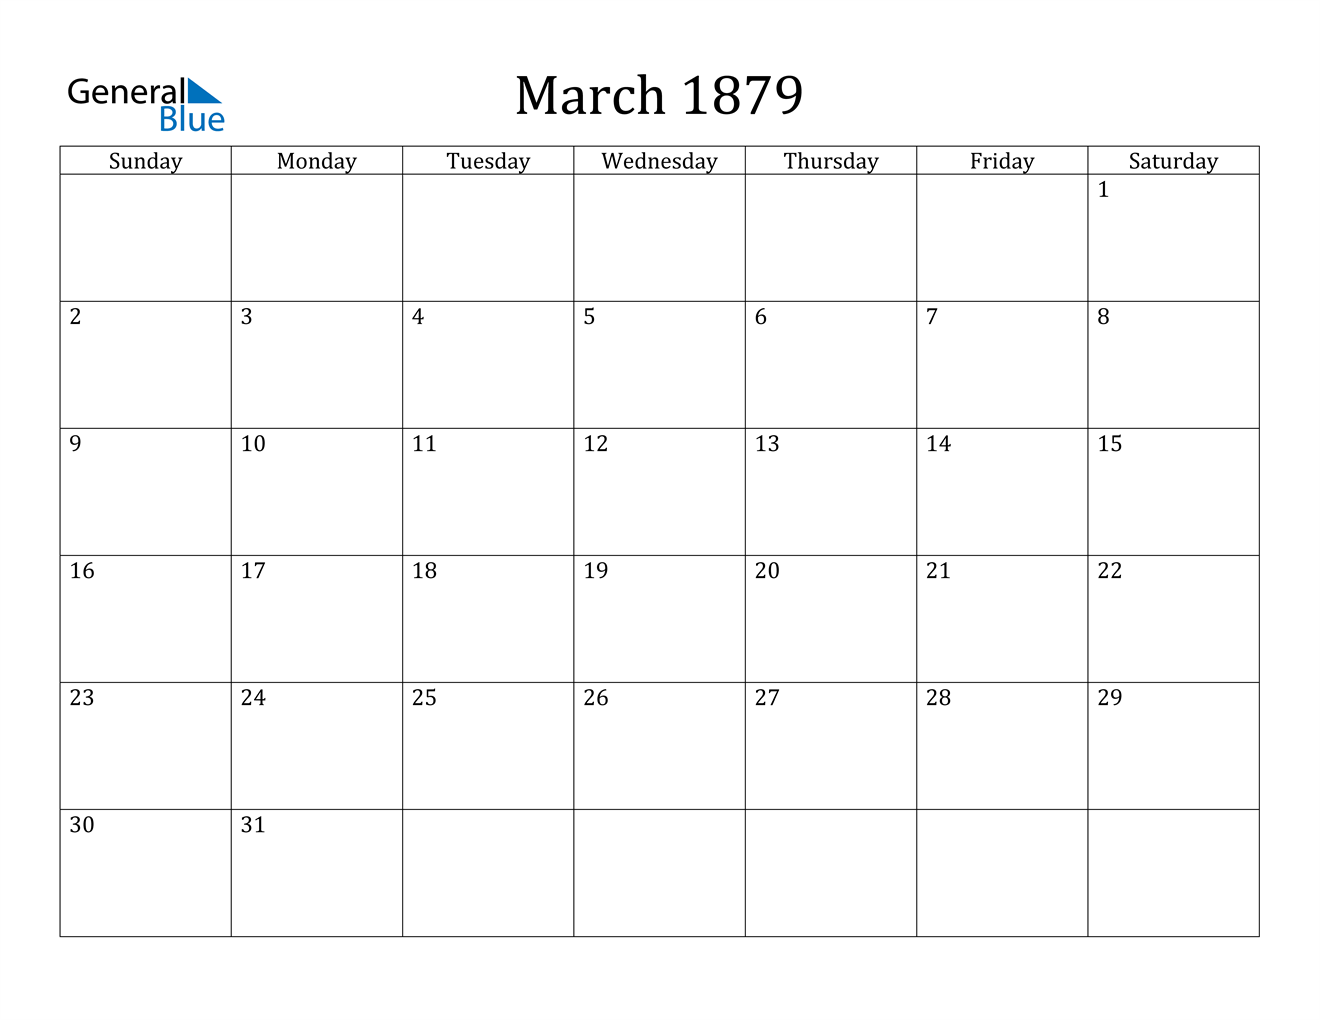 Image of March 1879 Calendar